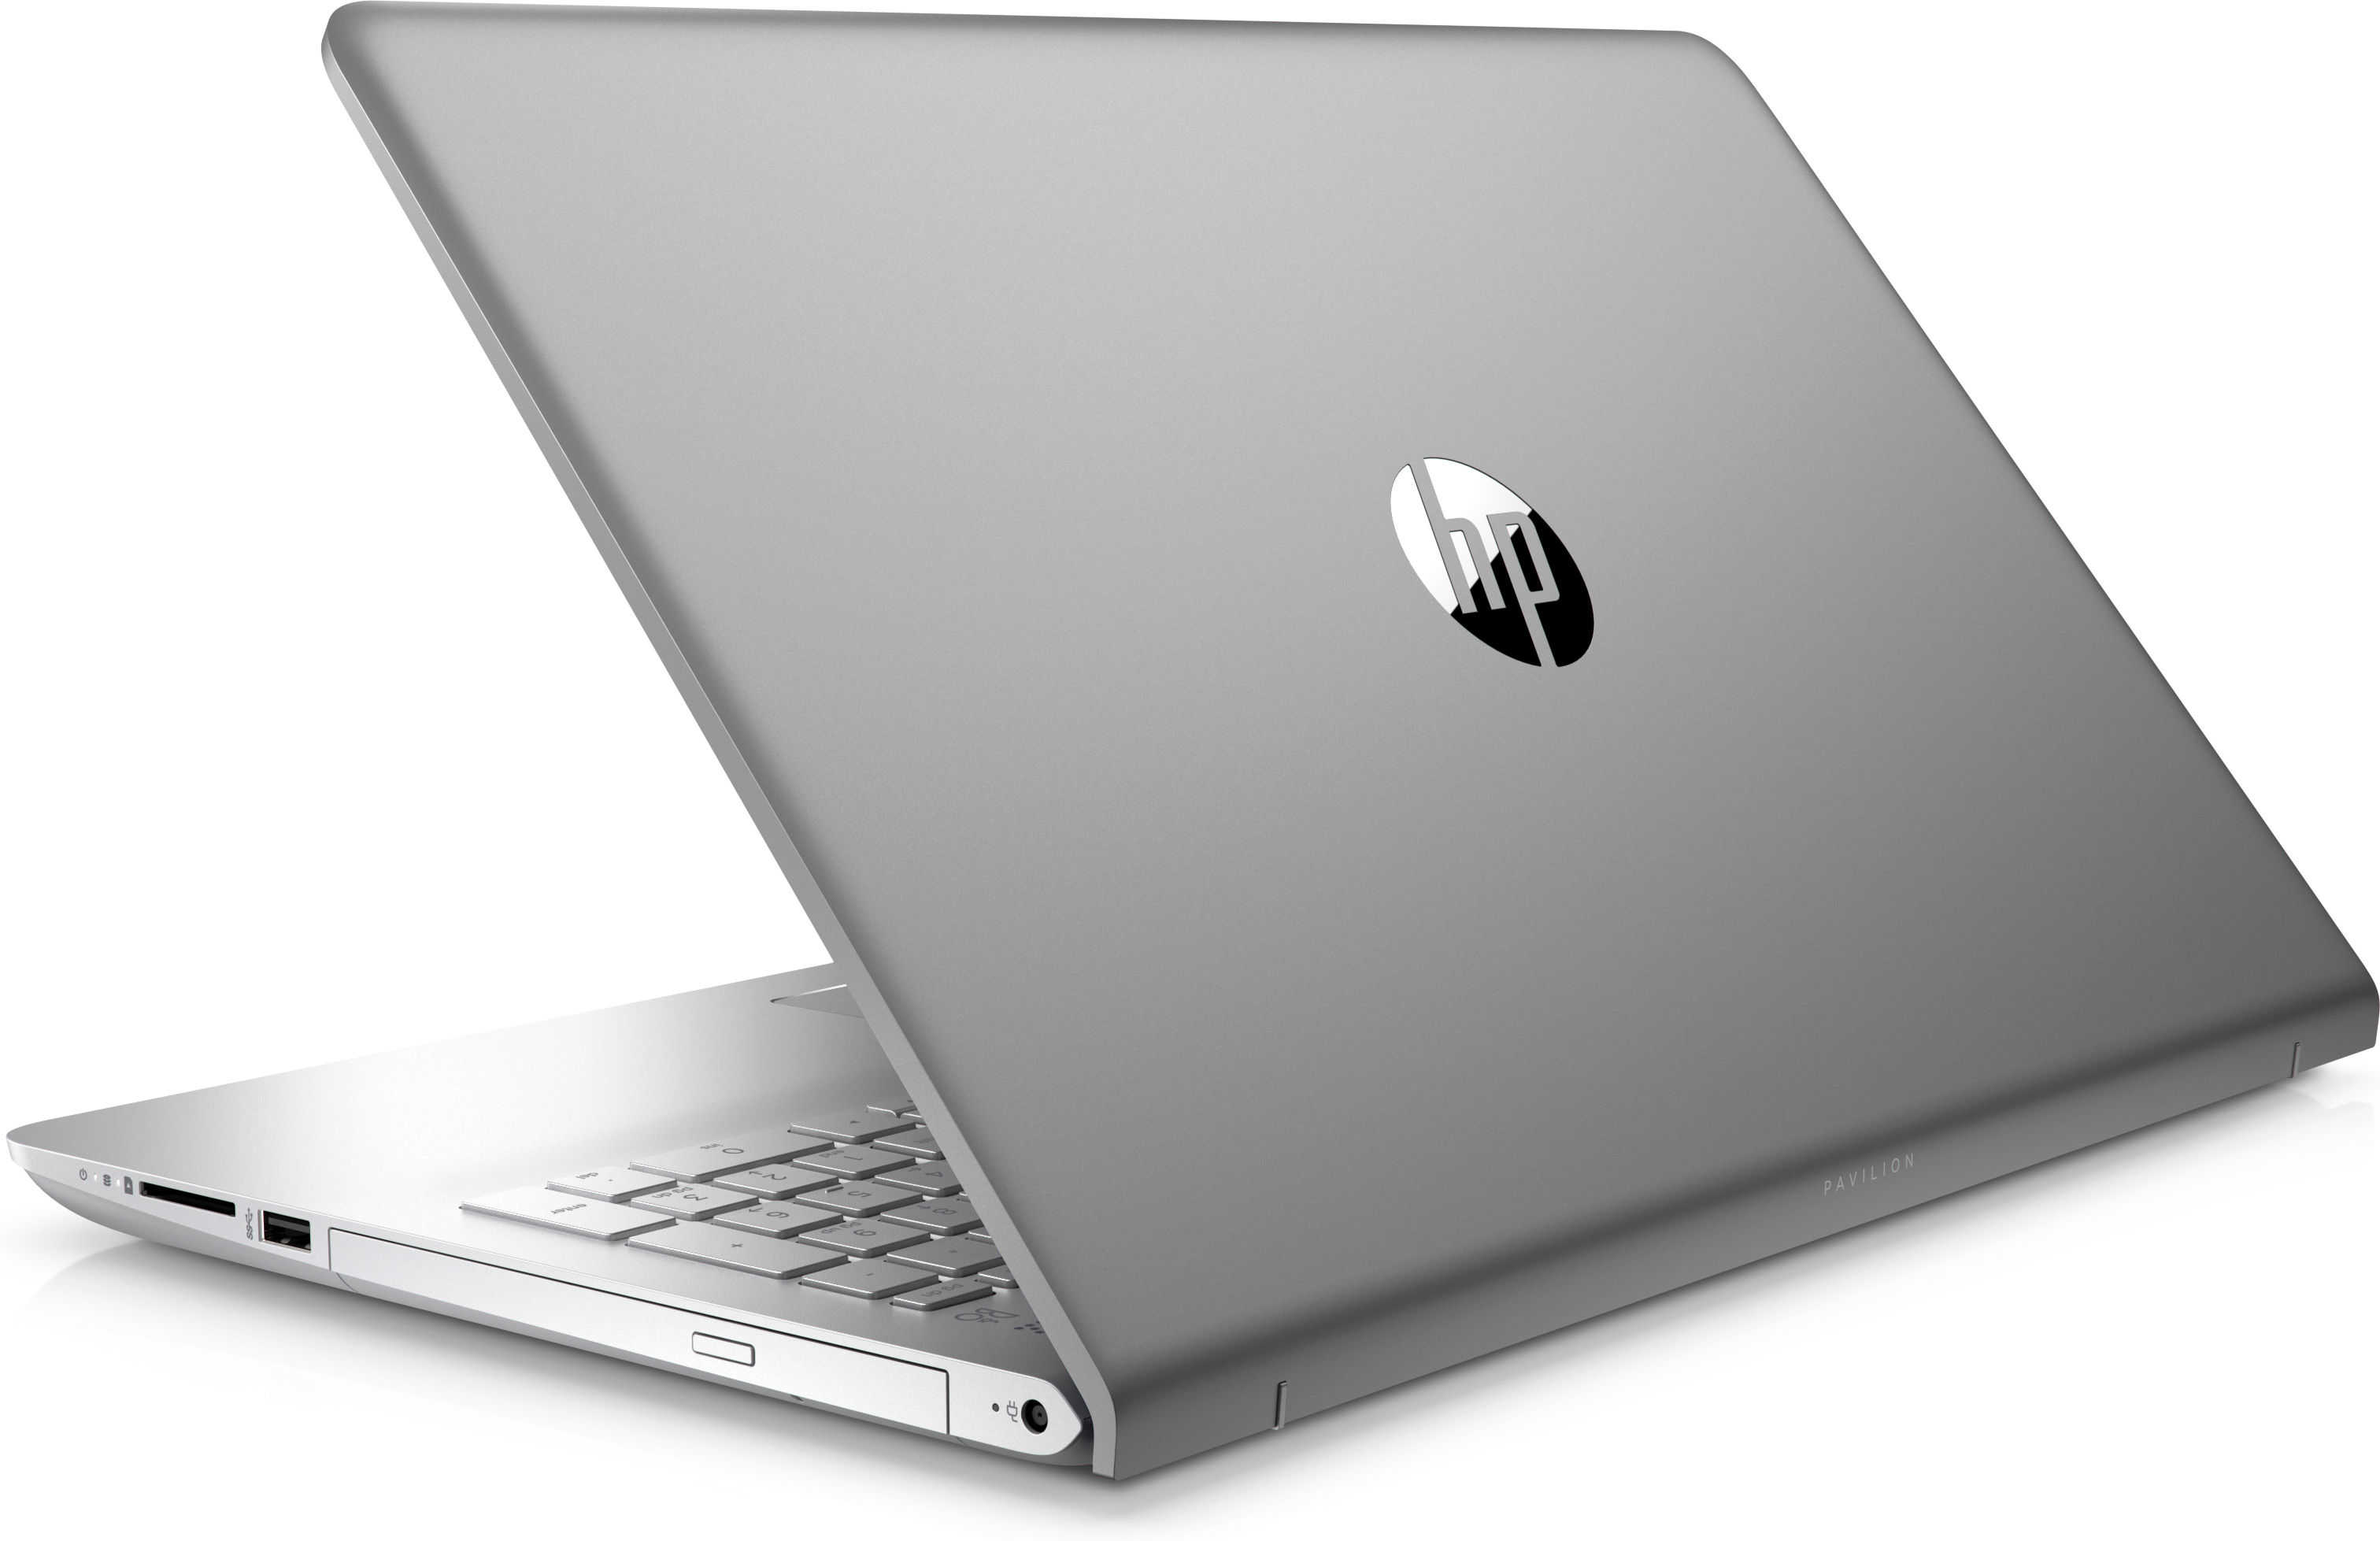 Refurbished - HP Pavilion 15-cd051nr 15.6' Touch AMD A12-9720P 2.7GHz 8GB 1TB Radeon R7 Win10